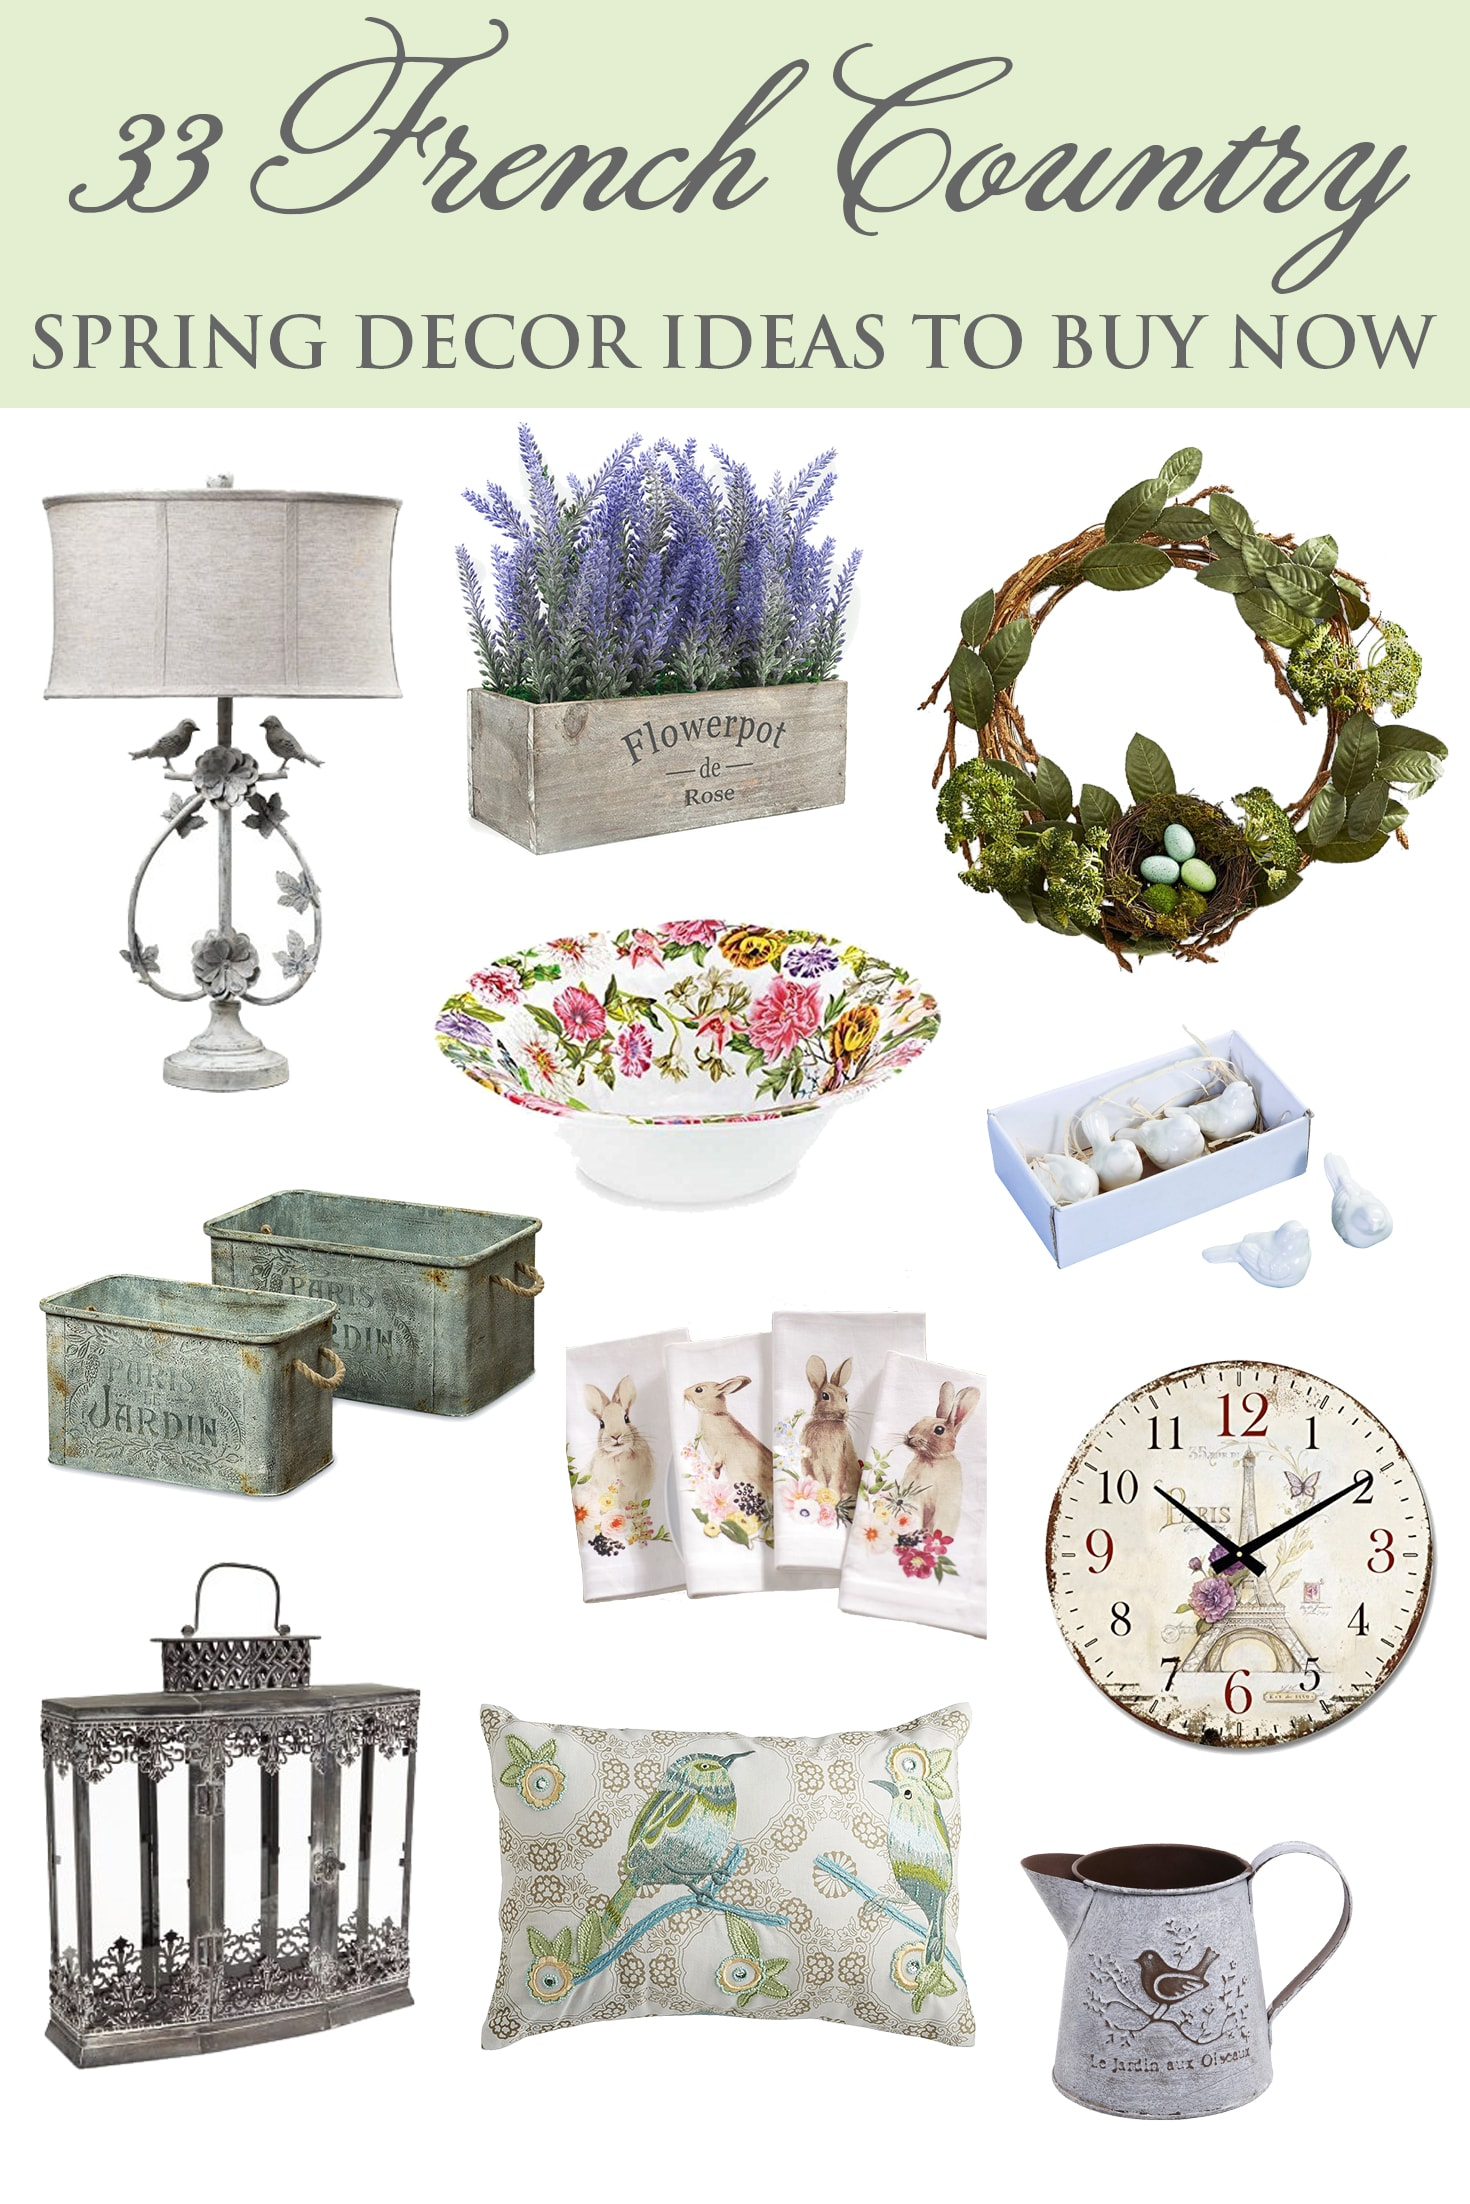 French Country Spring Shopping Guide